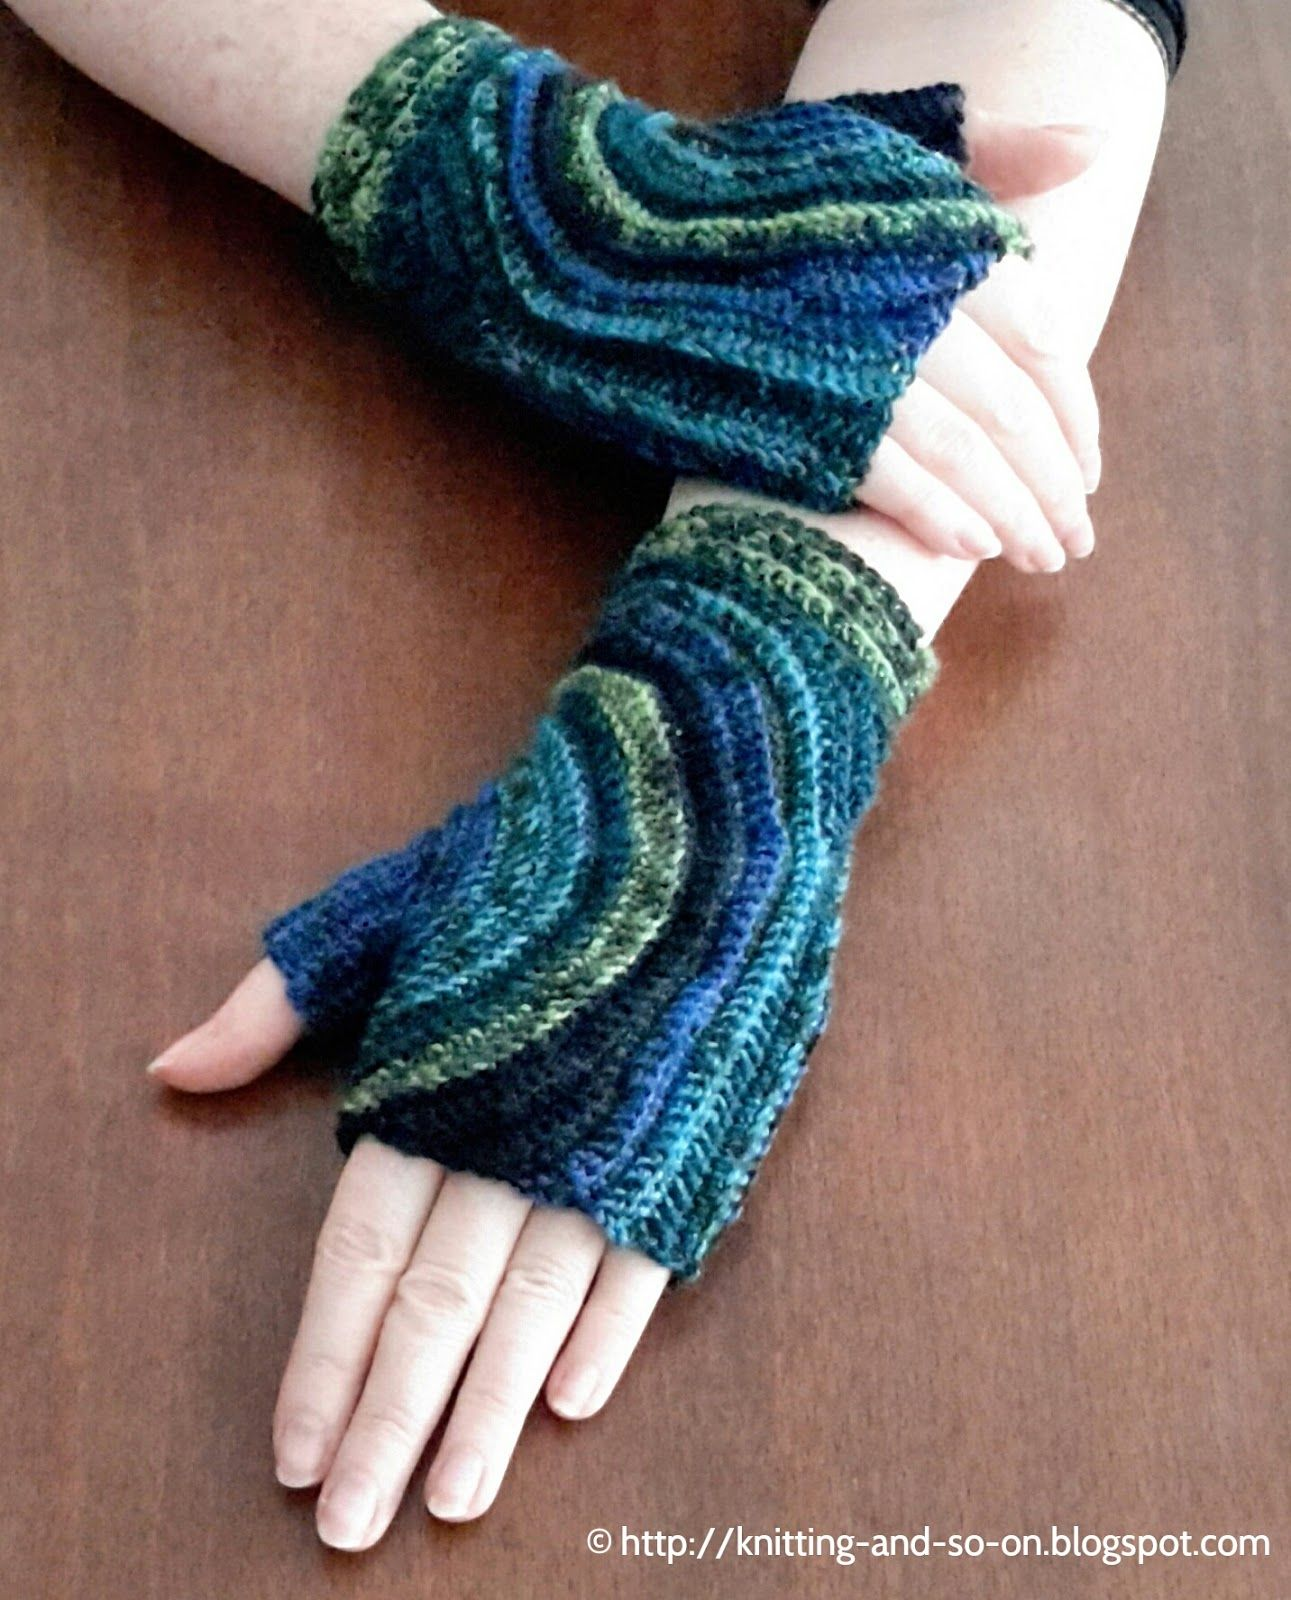 Knitting and so on: Kreisel Fingerless Gloves *Crochet version of a ...